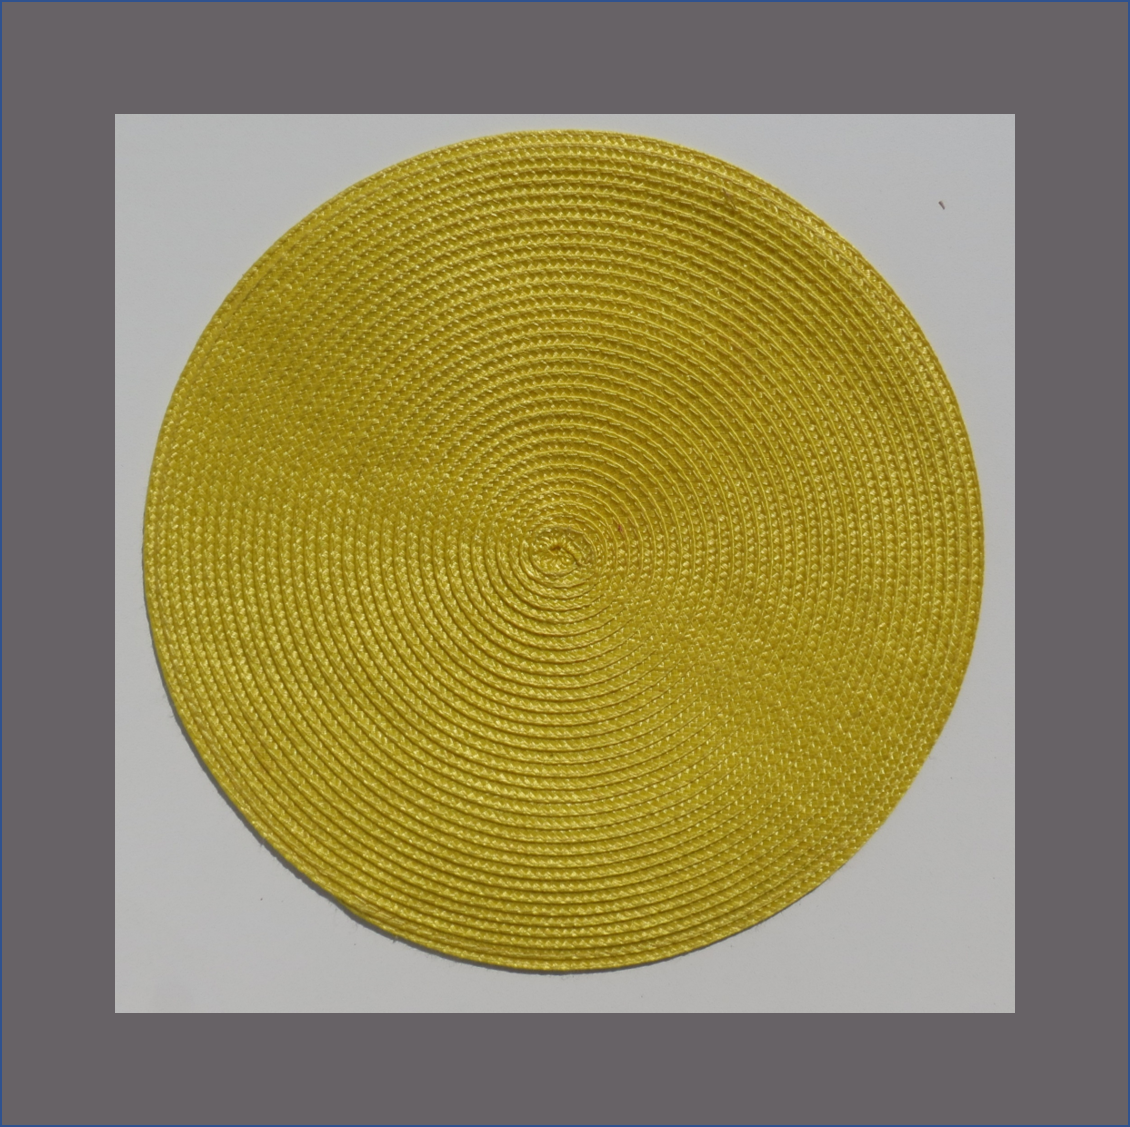 yellow-round-placemat